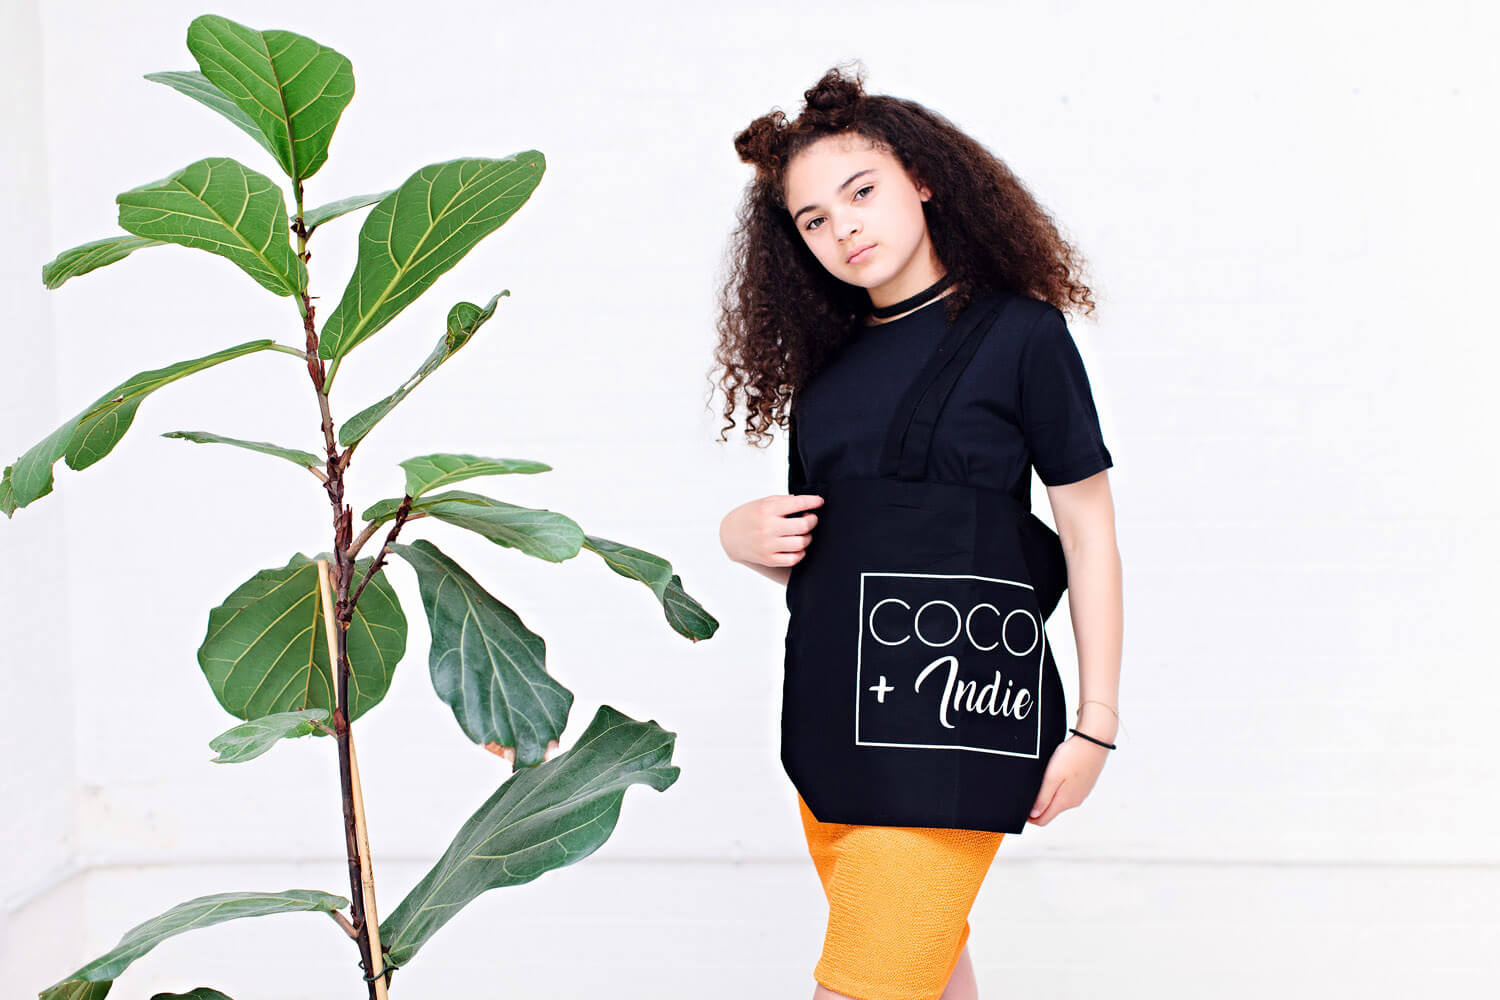 coco indie tote